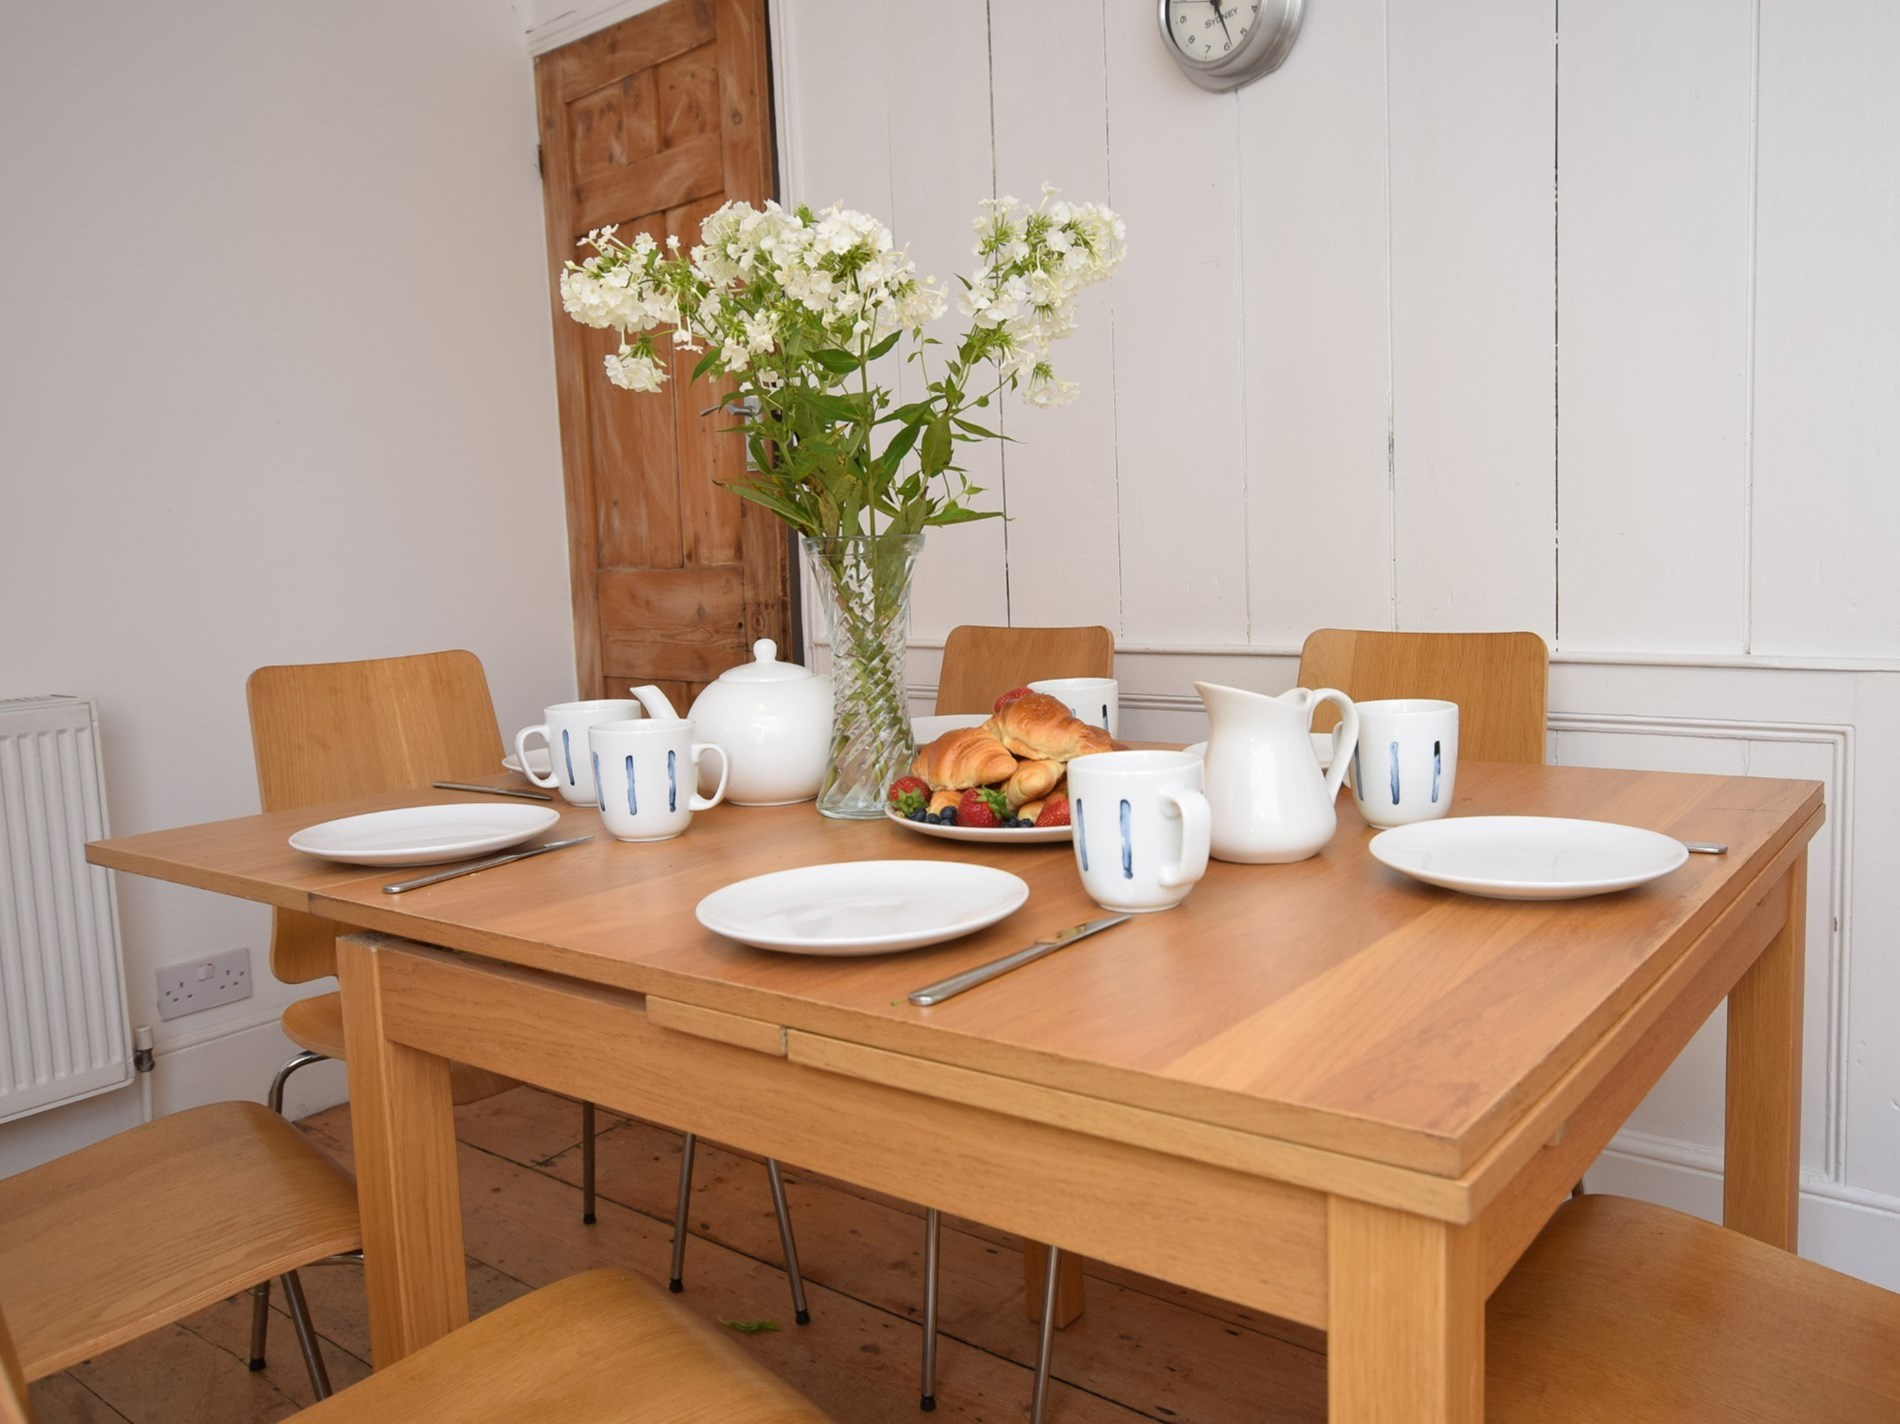 Large dining table to accommodate all the family